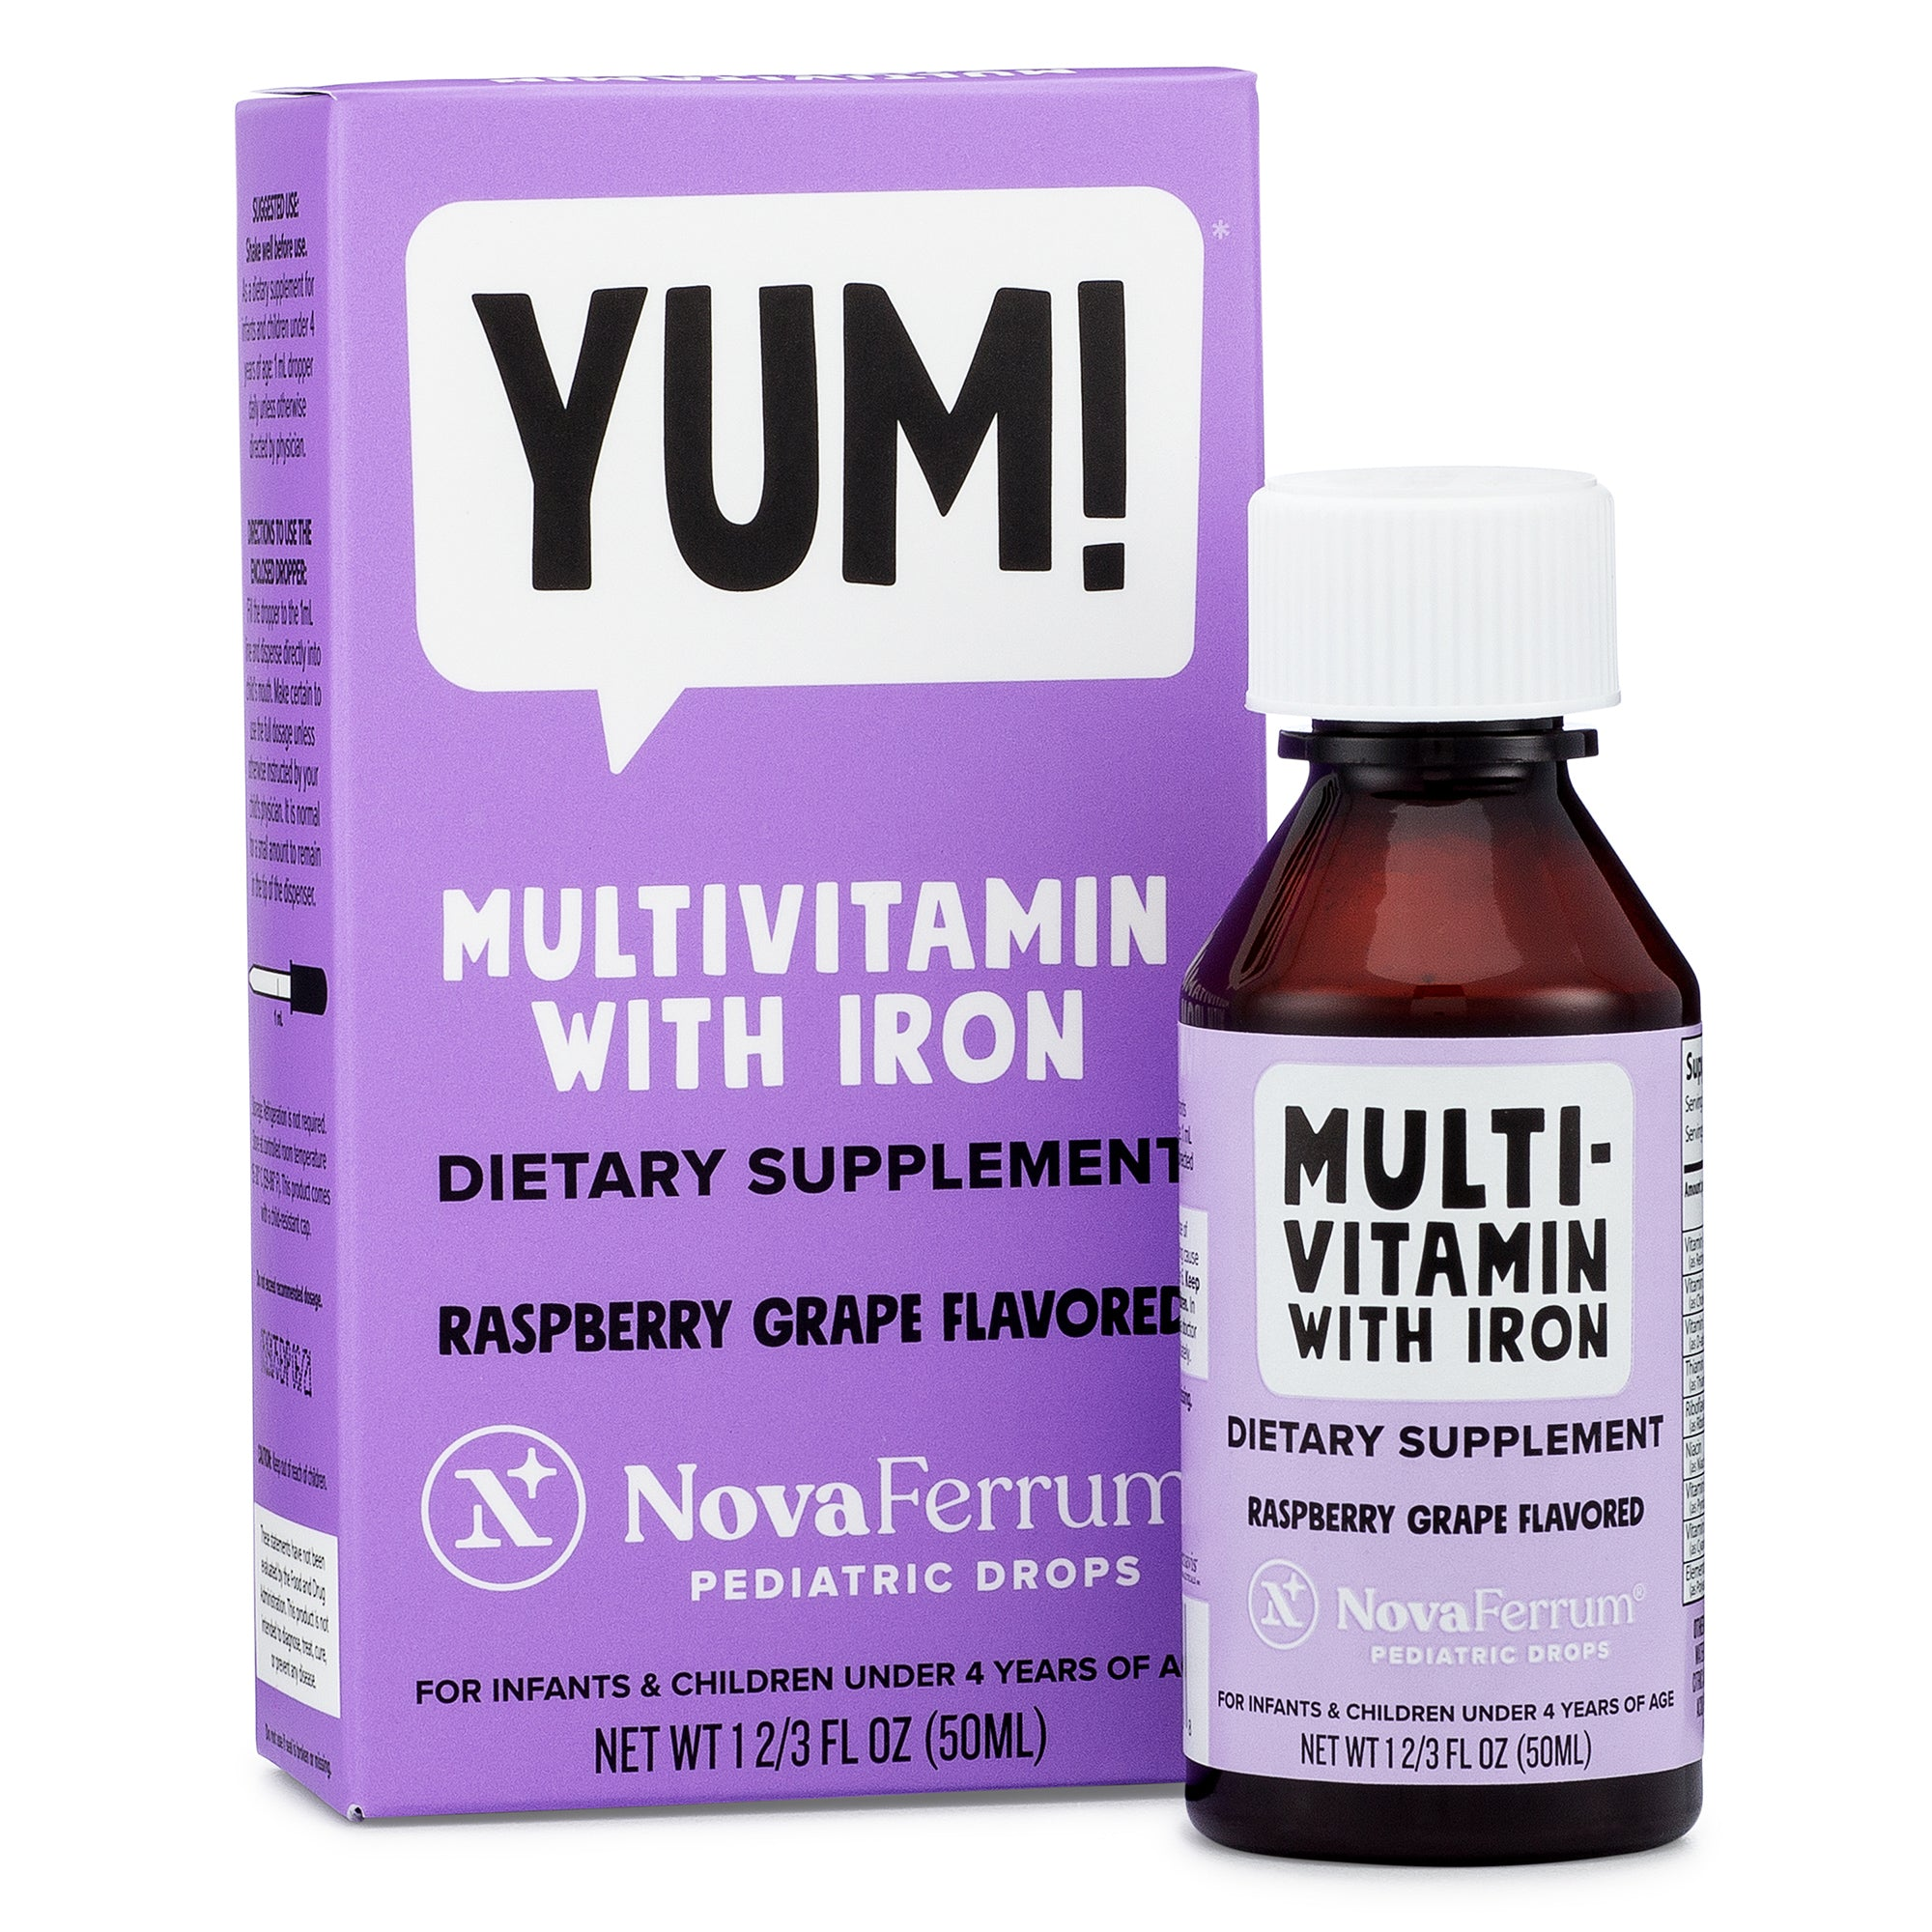 NovaFerrum Multivitamin with Iron for Infants and Toddlers (2 & 4 FL OZ)